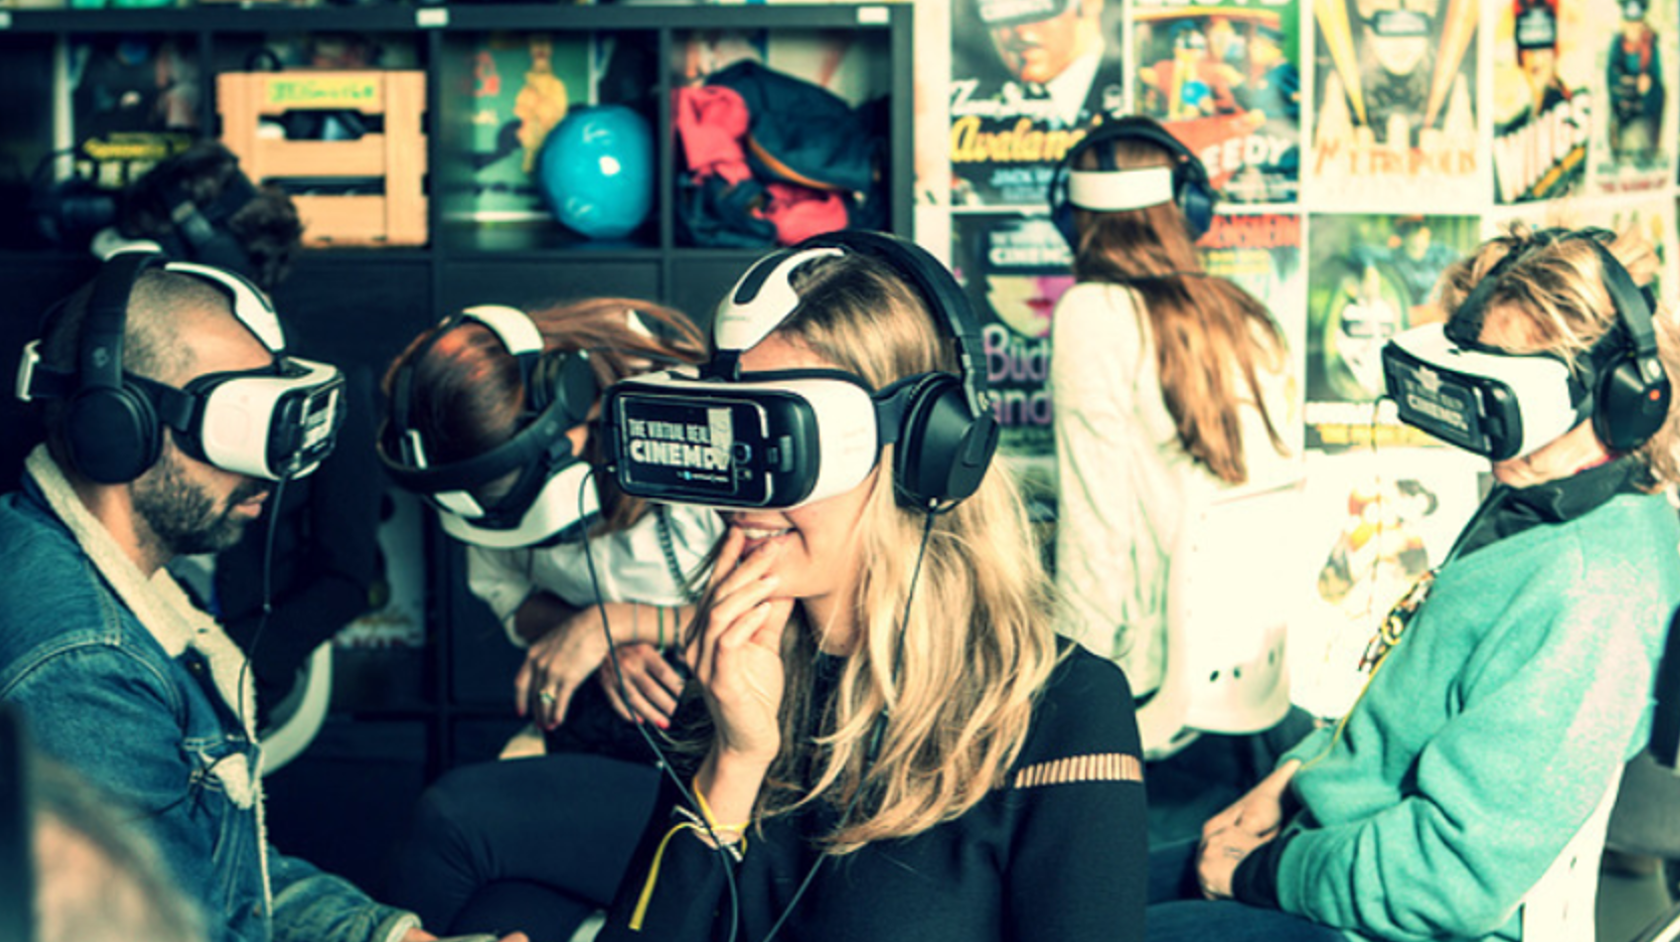 Synchronised Virtual Reality experiences for events